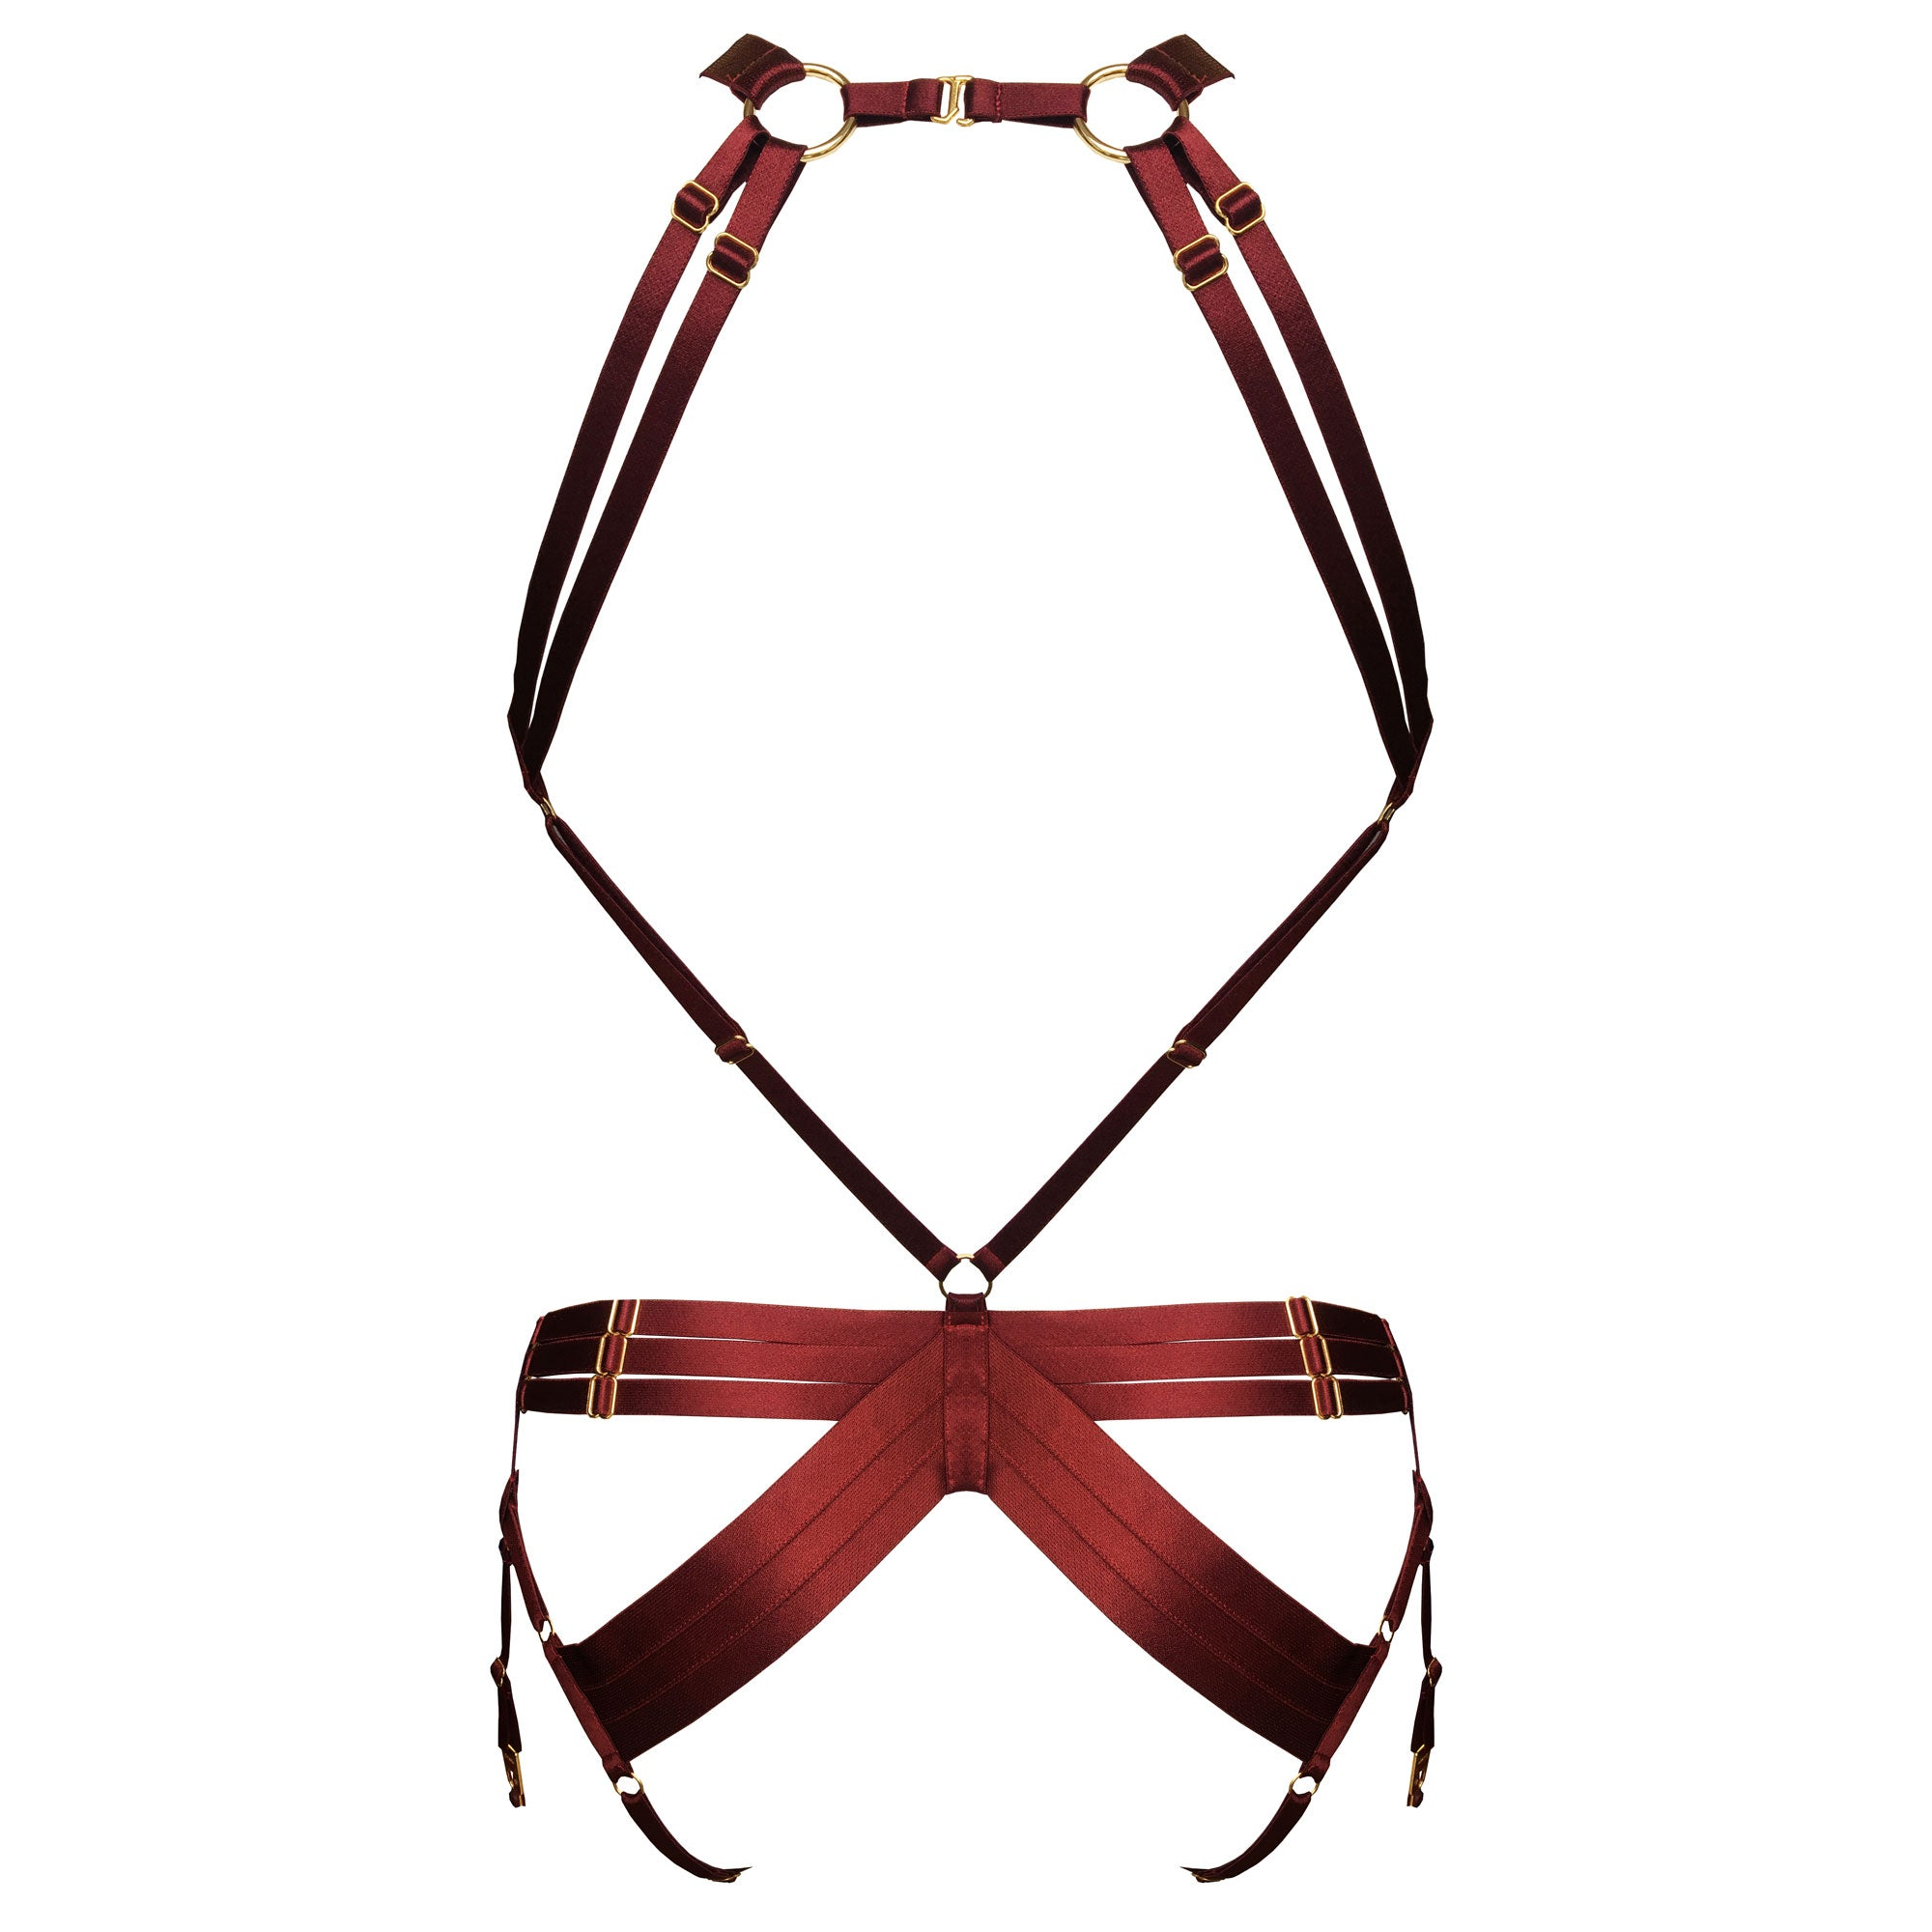 Bordelle Kew Bondage Harness - morello burgundy red